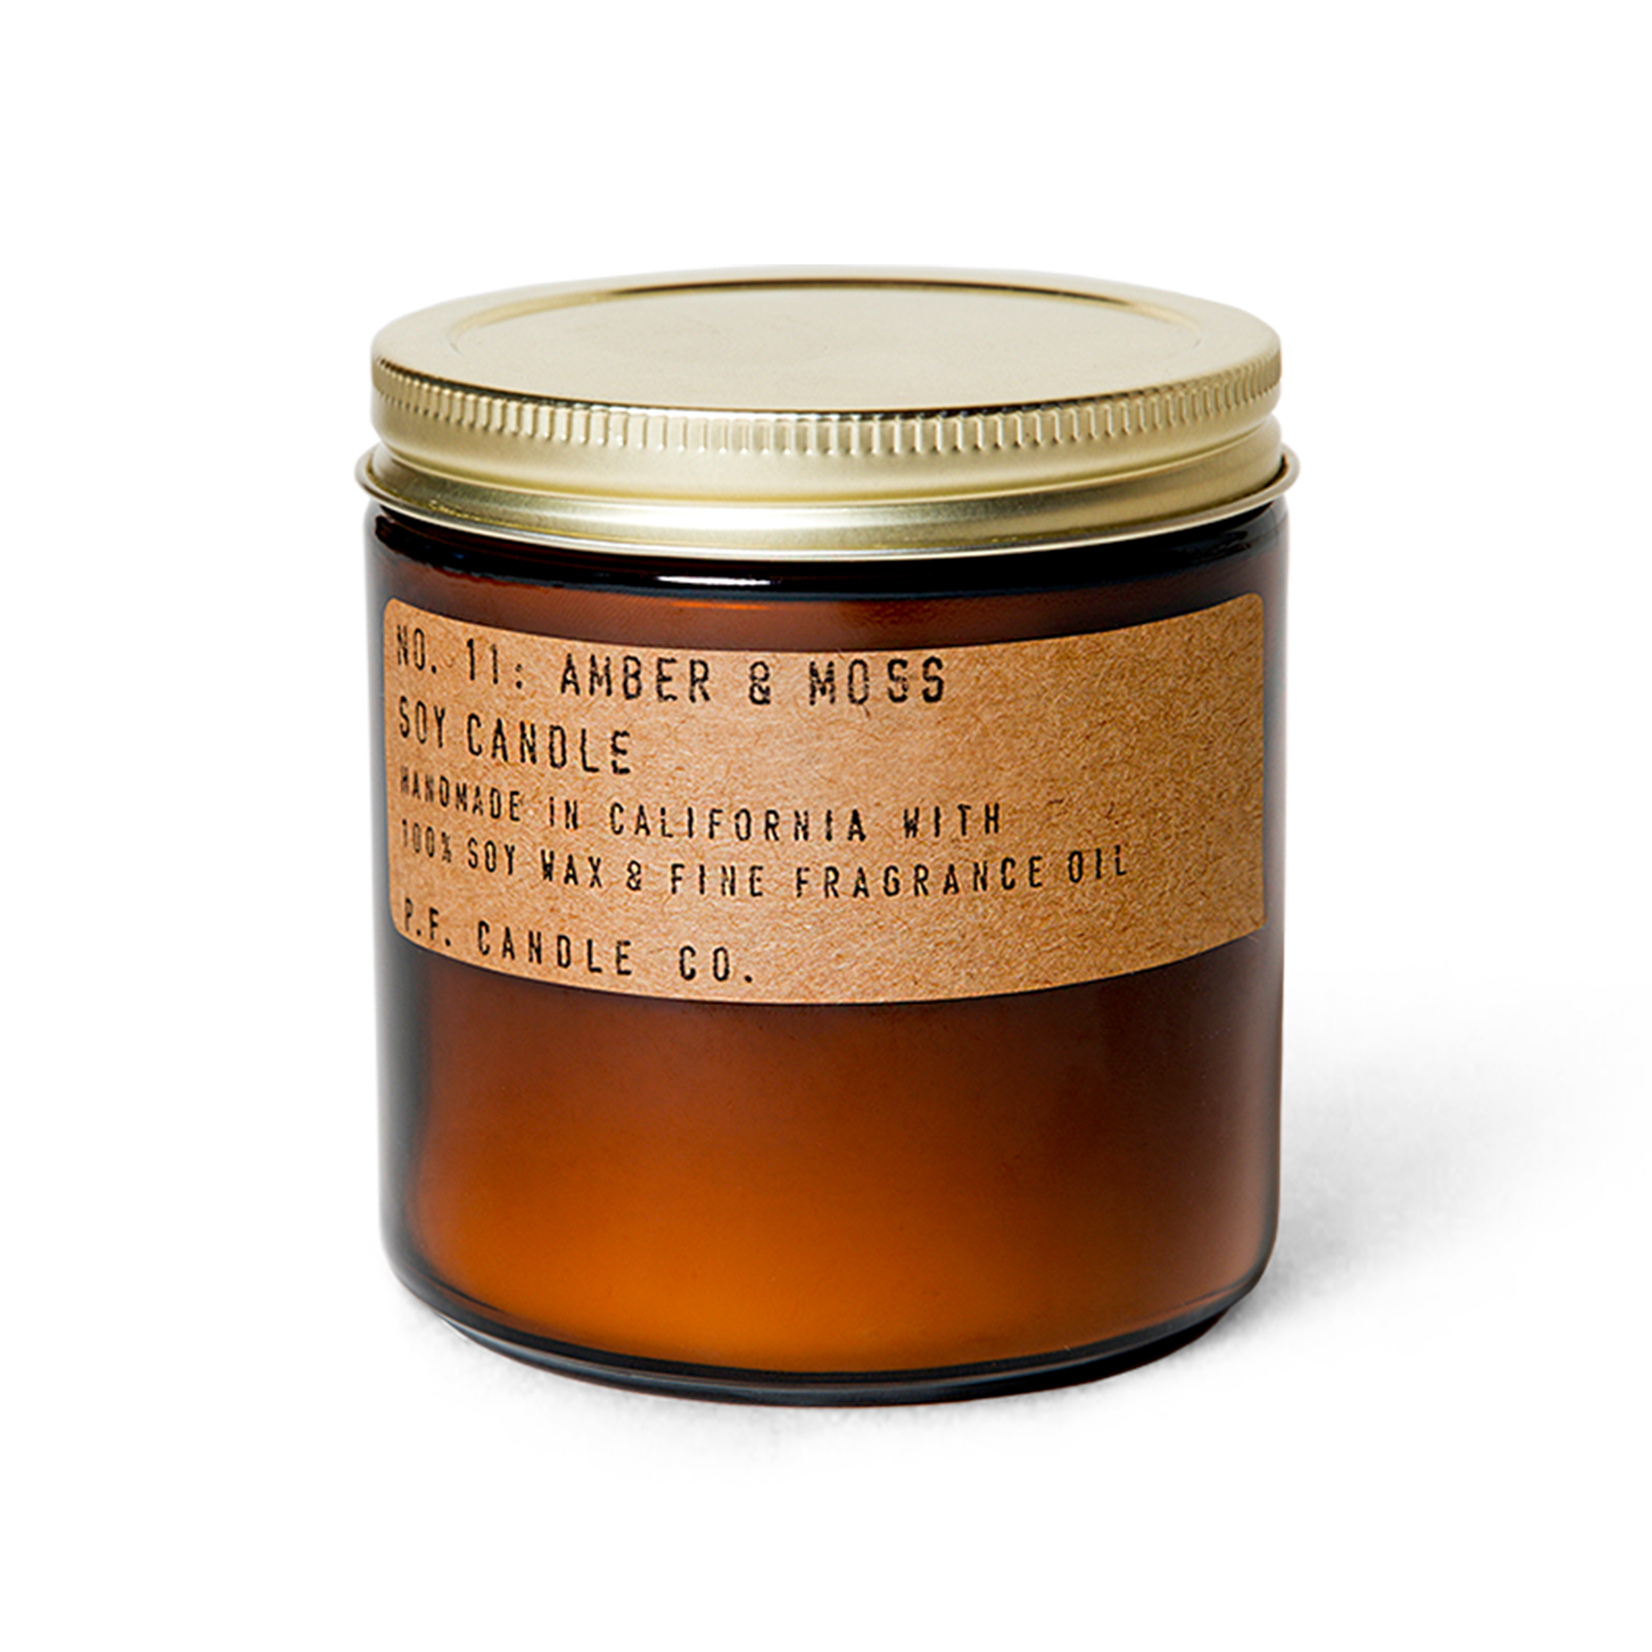 P.F. Candle Co. P.F. Soy Candle 12.5oz Amber & Moss